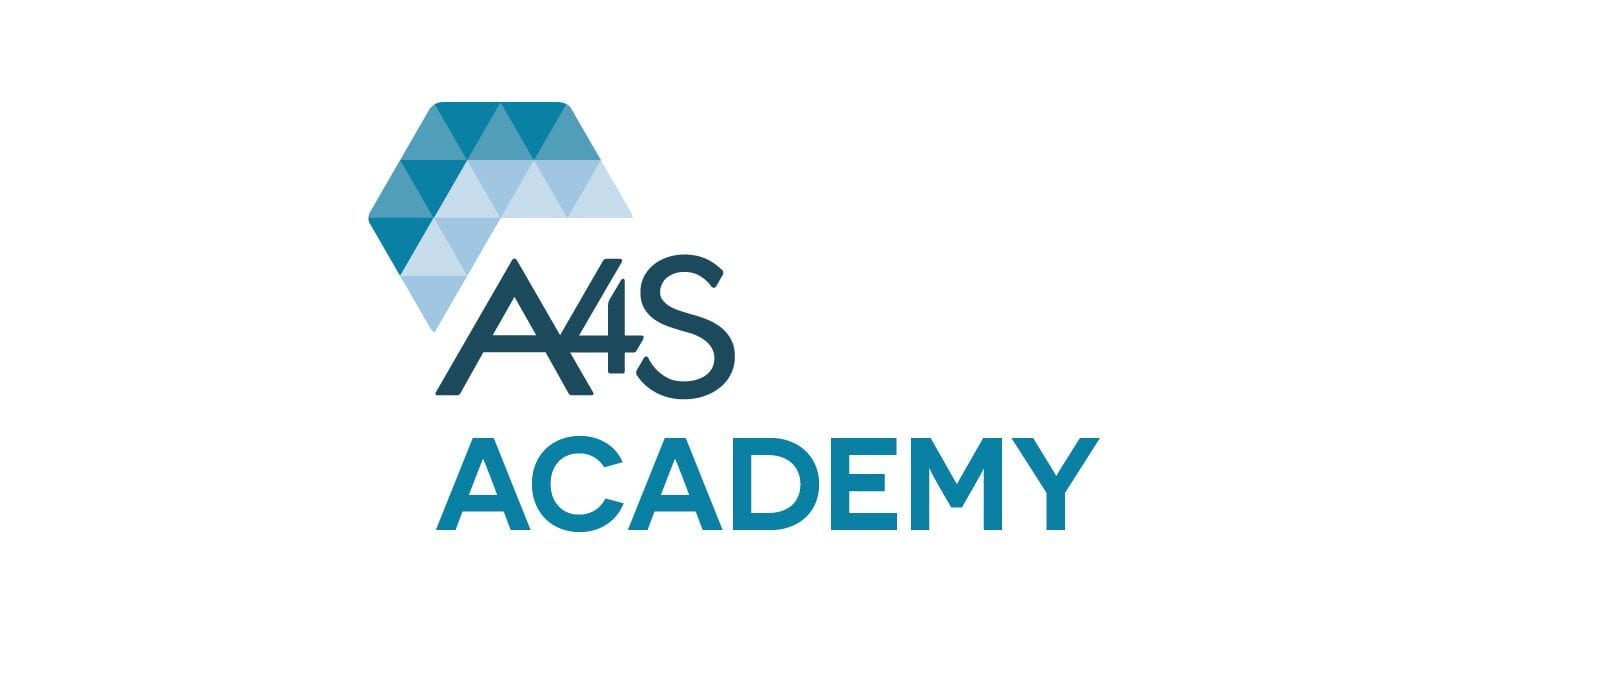 A4S academy official